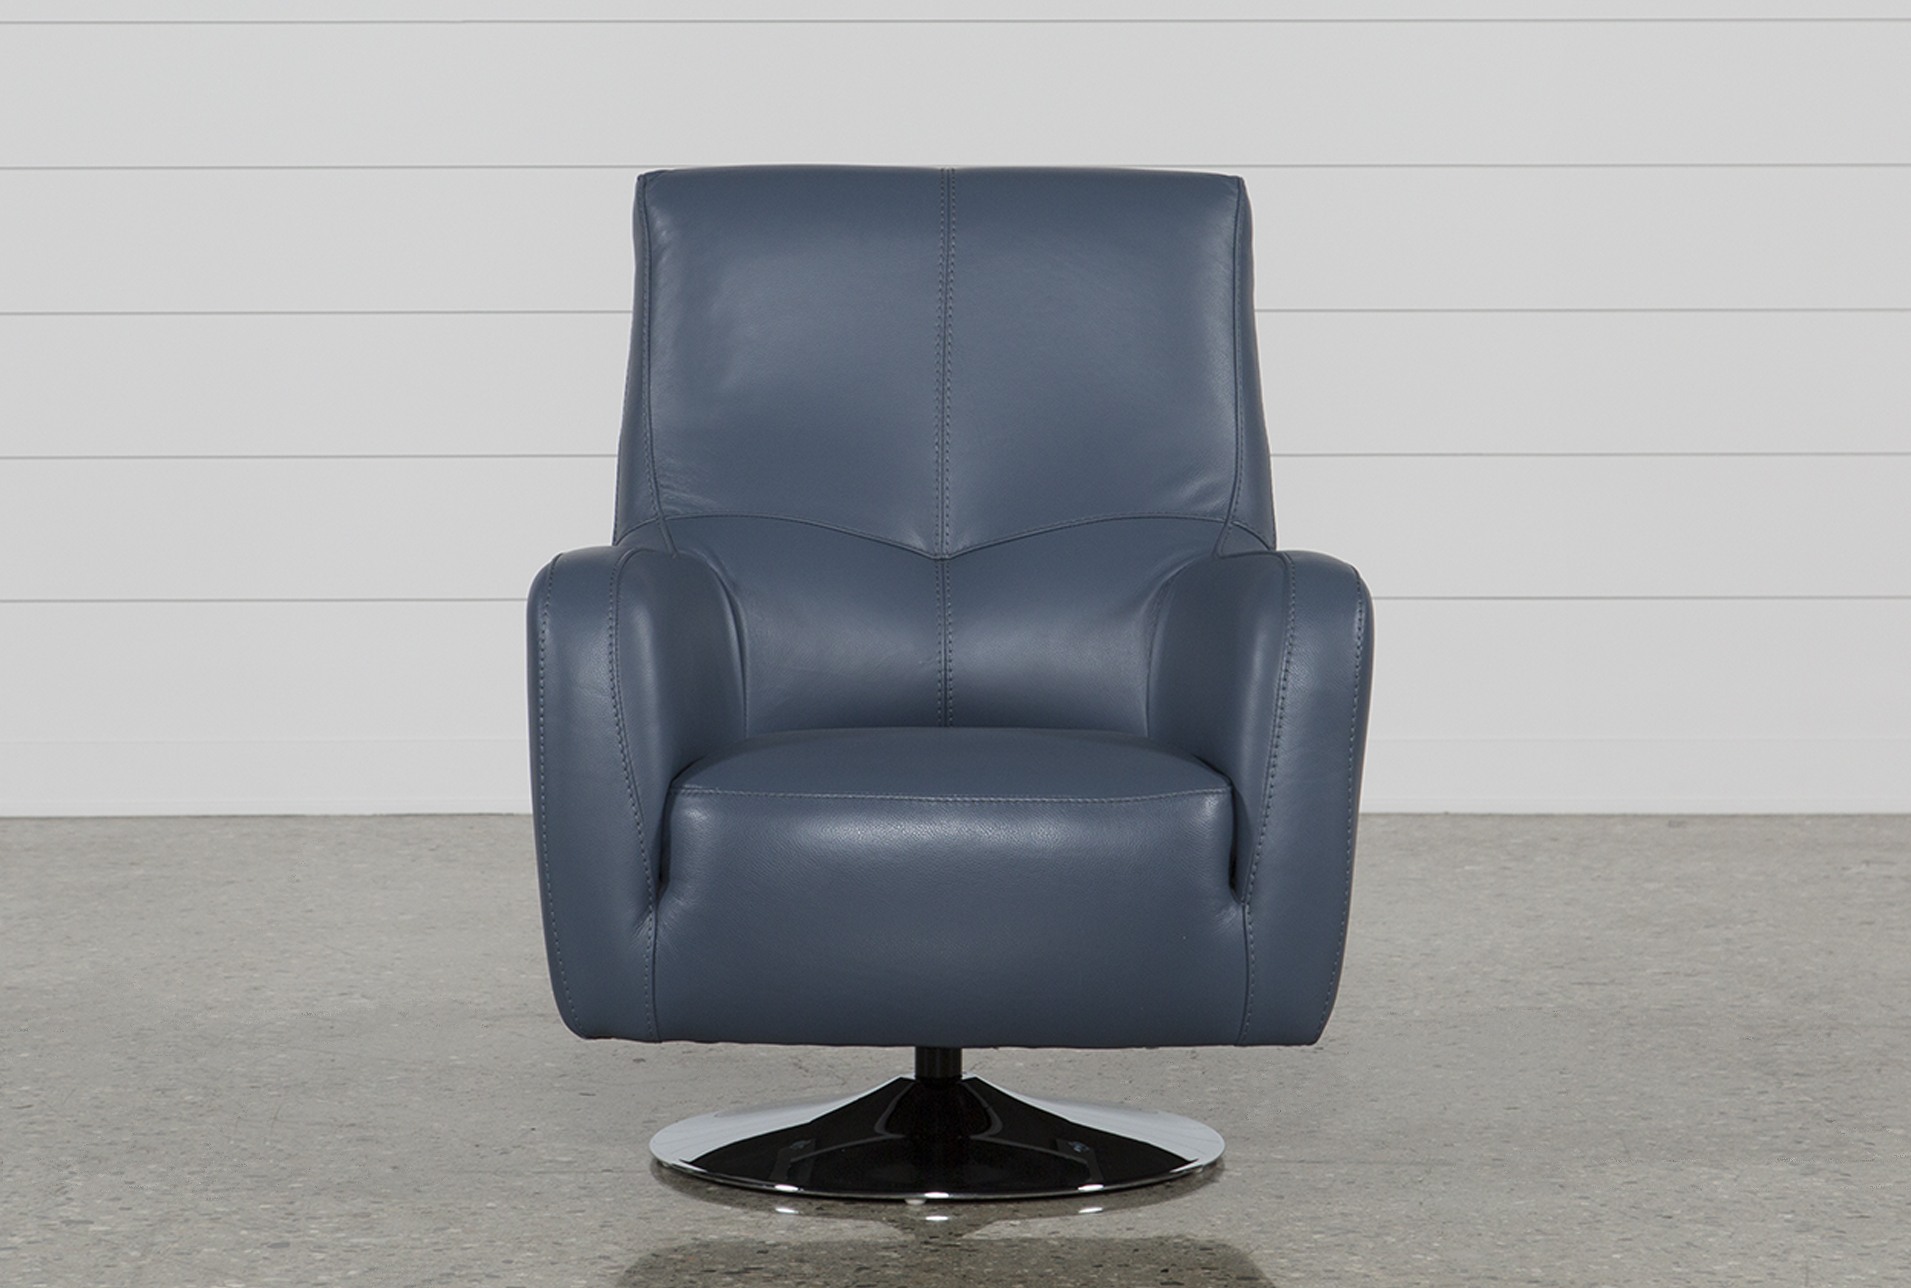 Kawai Leather Swivel Chair | Products | Pinterest | Leather Swivel Throughout Amala White Leather Reclining Swivel Chairs (View 8 of 25)